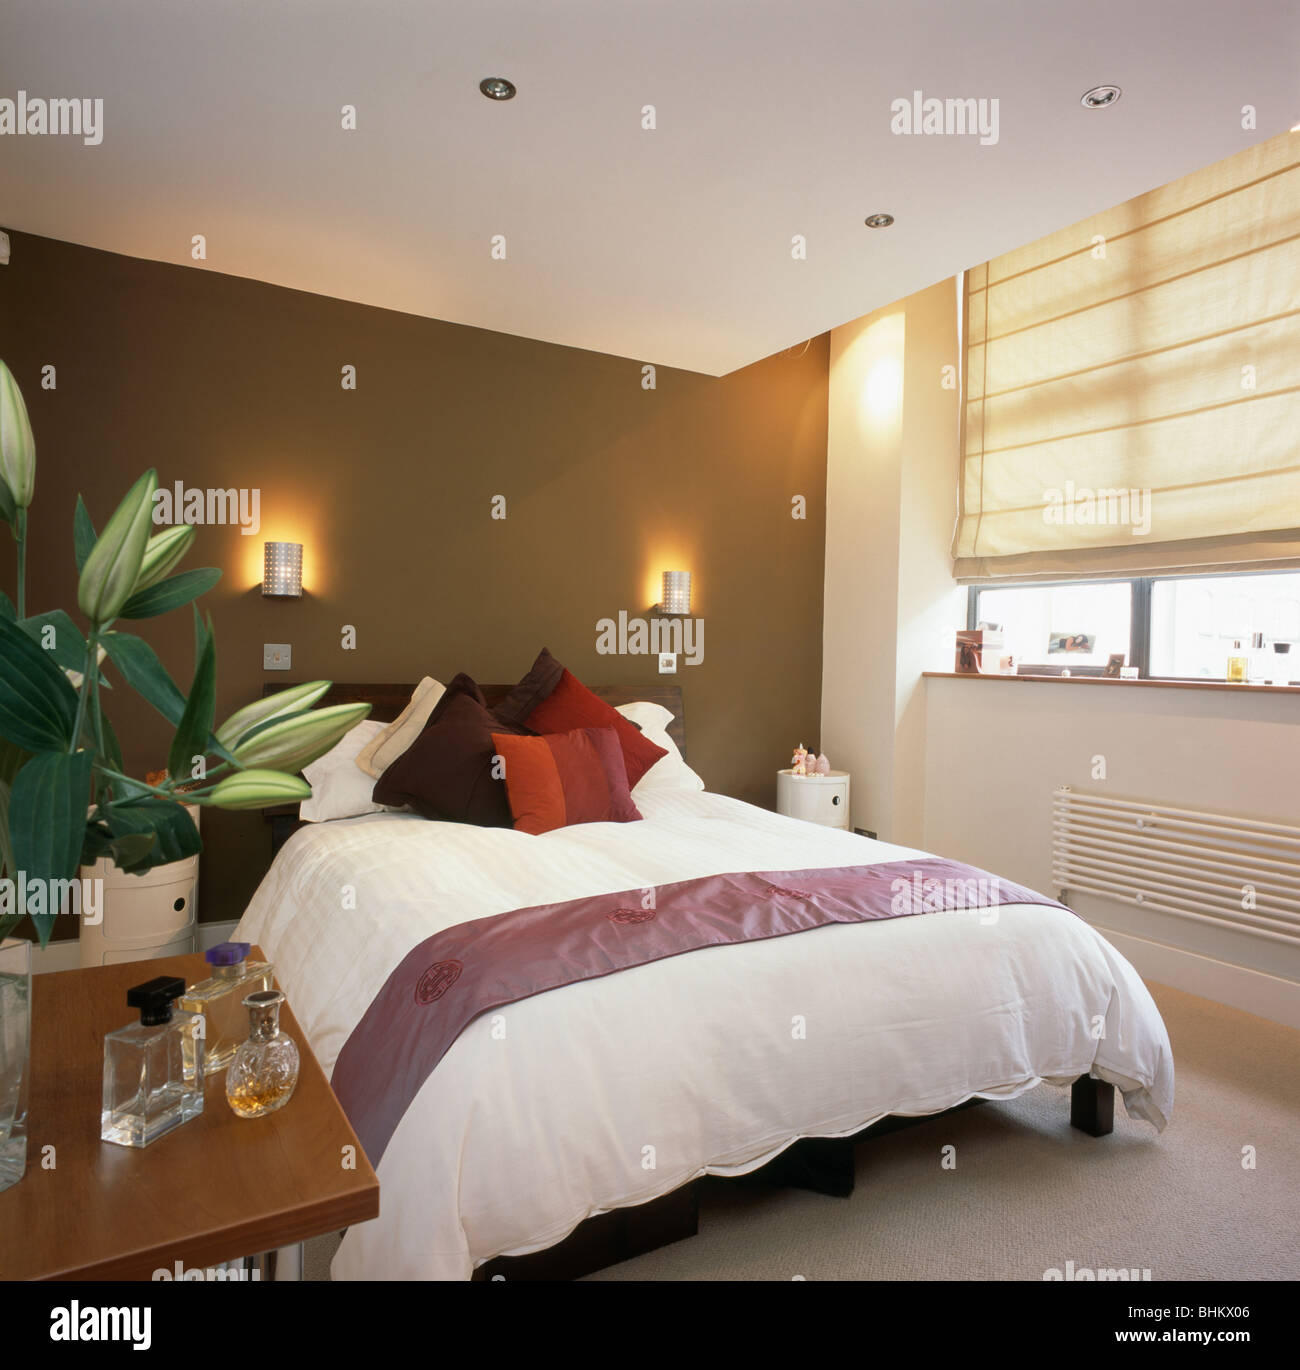 Wall Lights On Brown Wall Above Bed With White Duvet In Modern Stock Photo Alamy